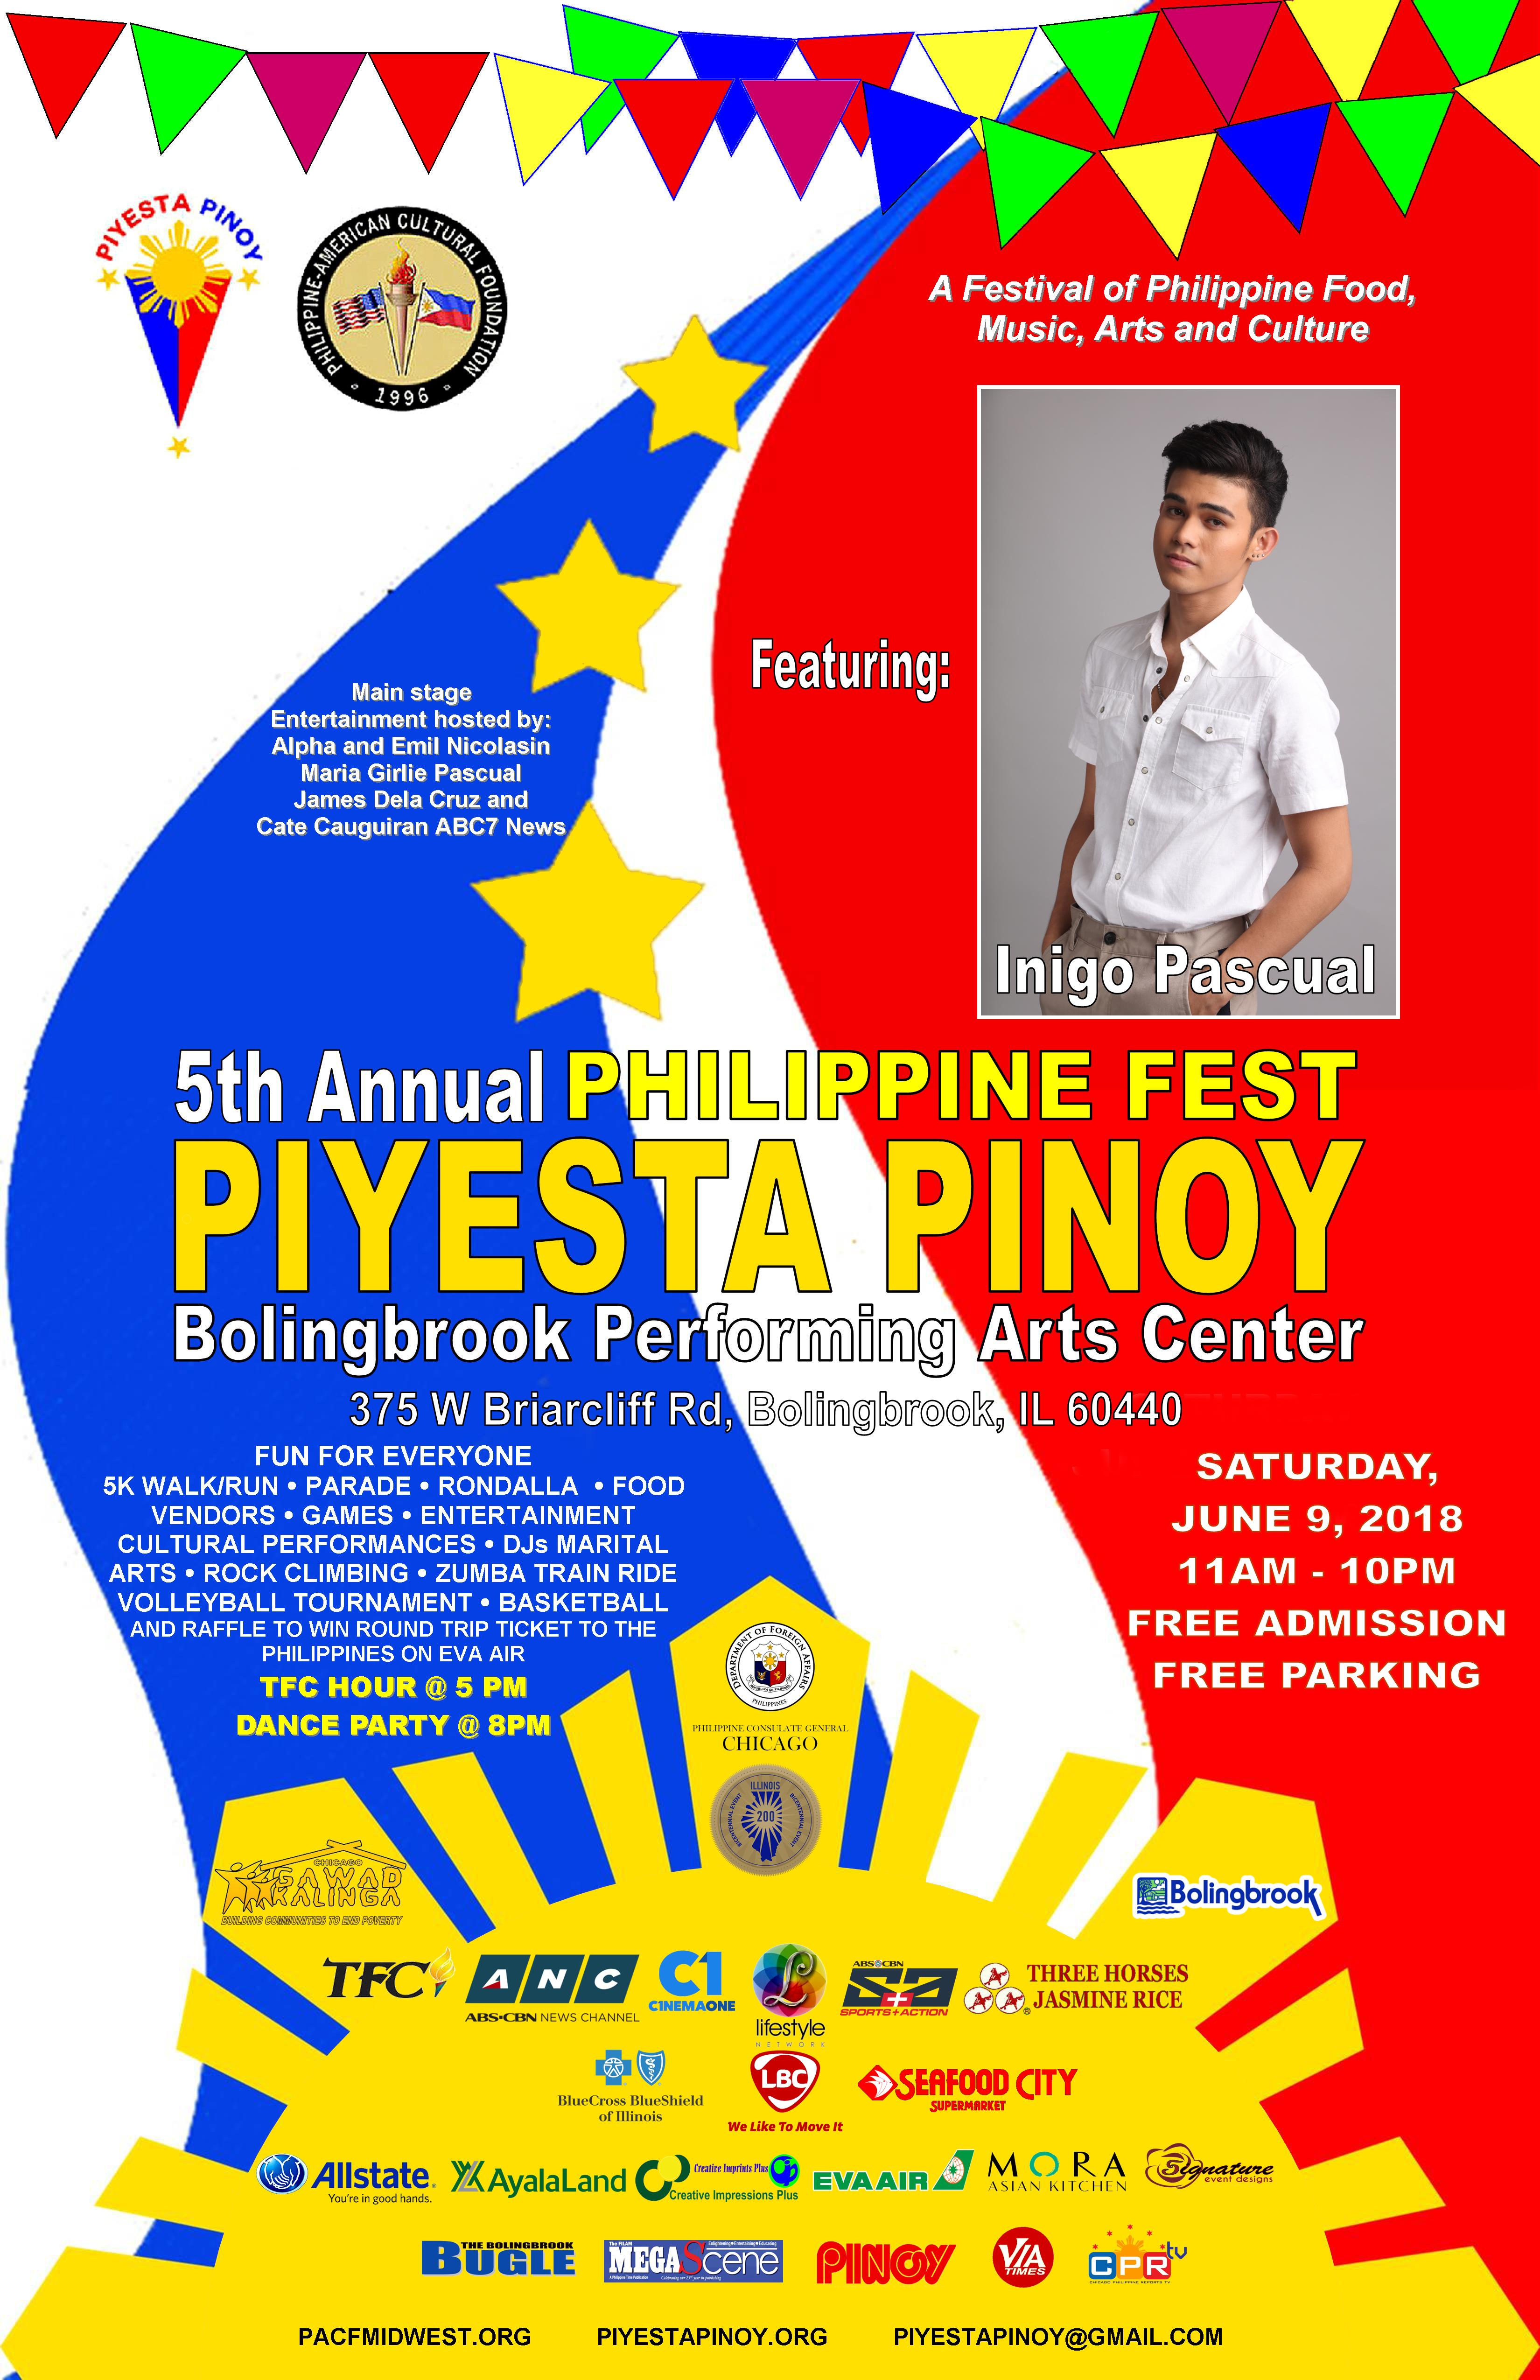 Philippine american cultural foundation 2018 piyesta pinoy announces local performers m4hsunfo